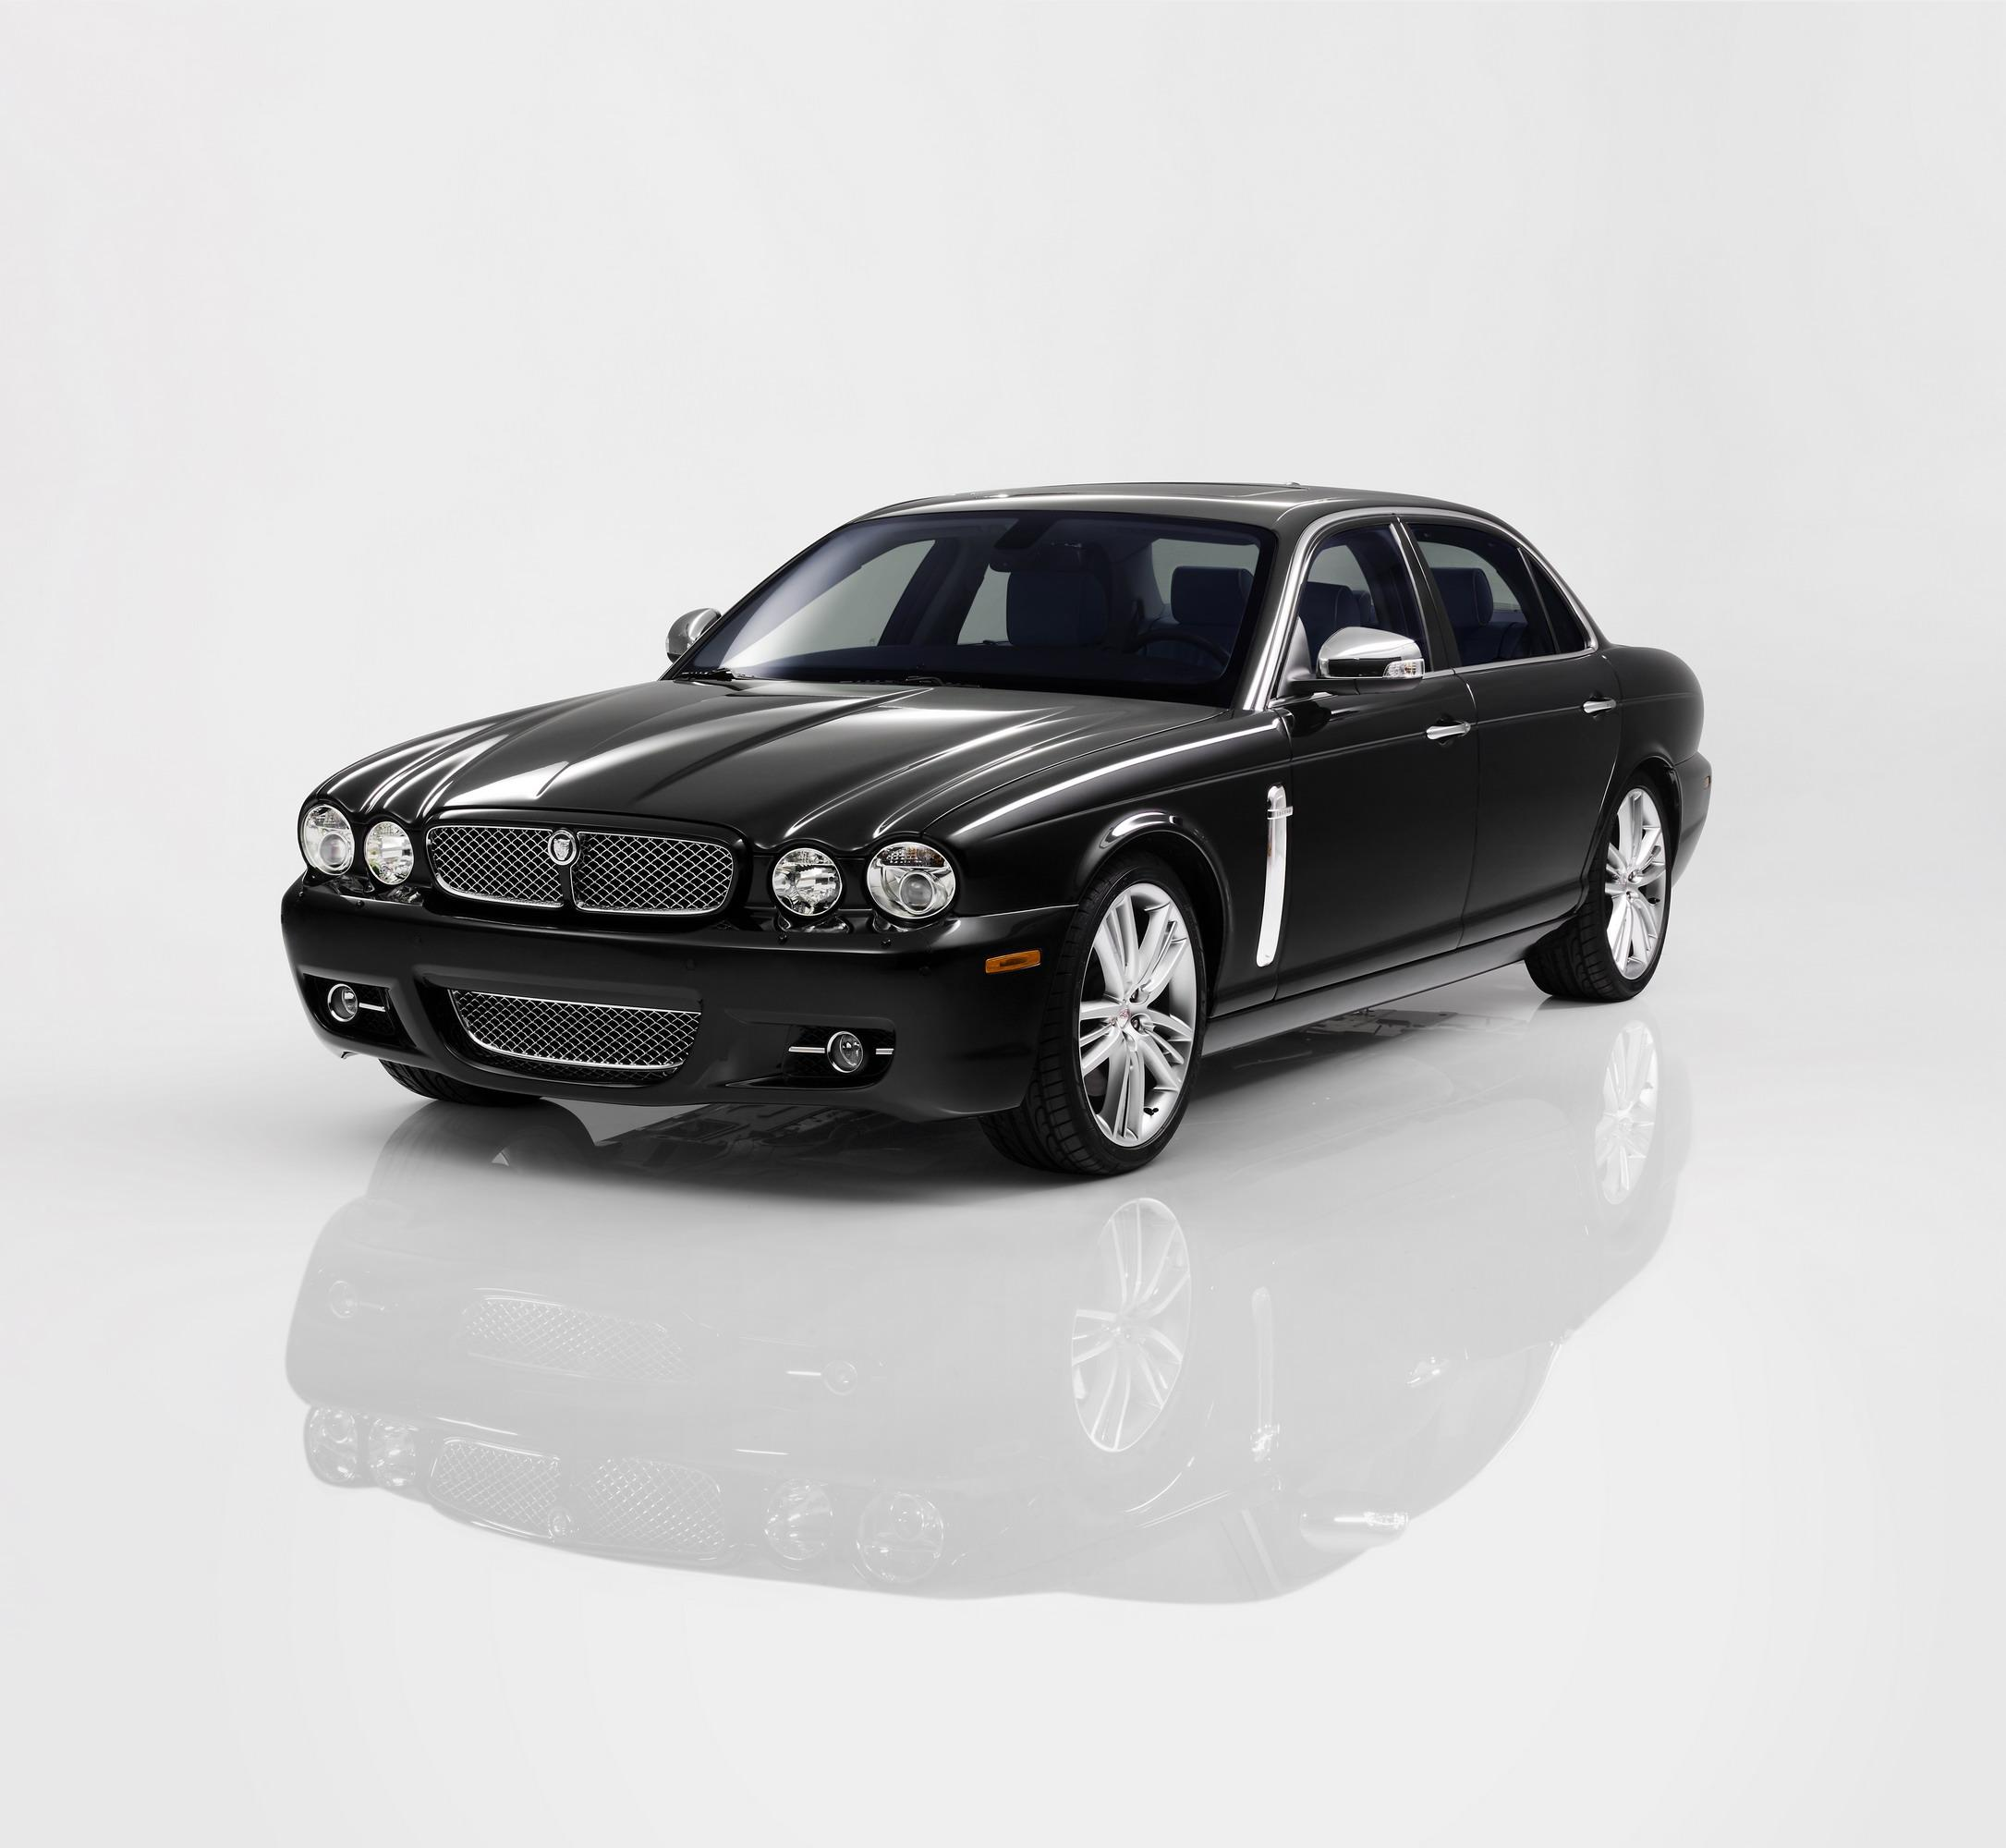 Price Of New Jaguar: 2009 Jaguar XJ Portfolio